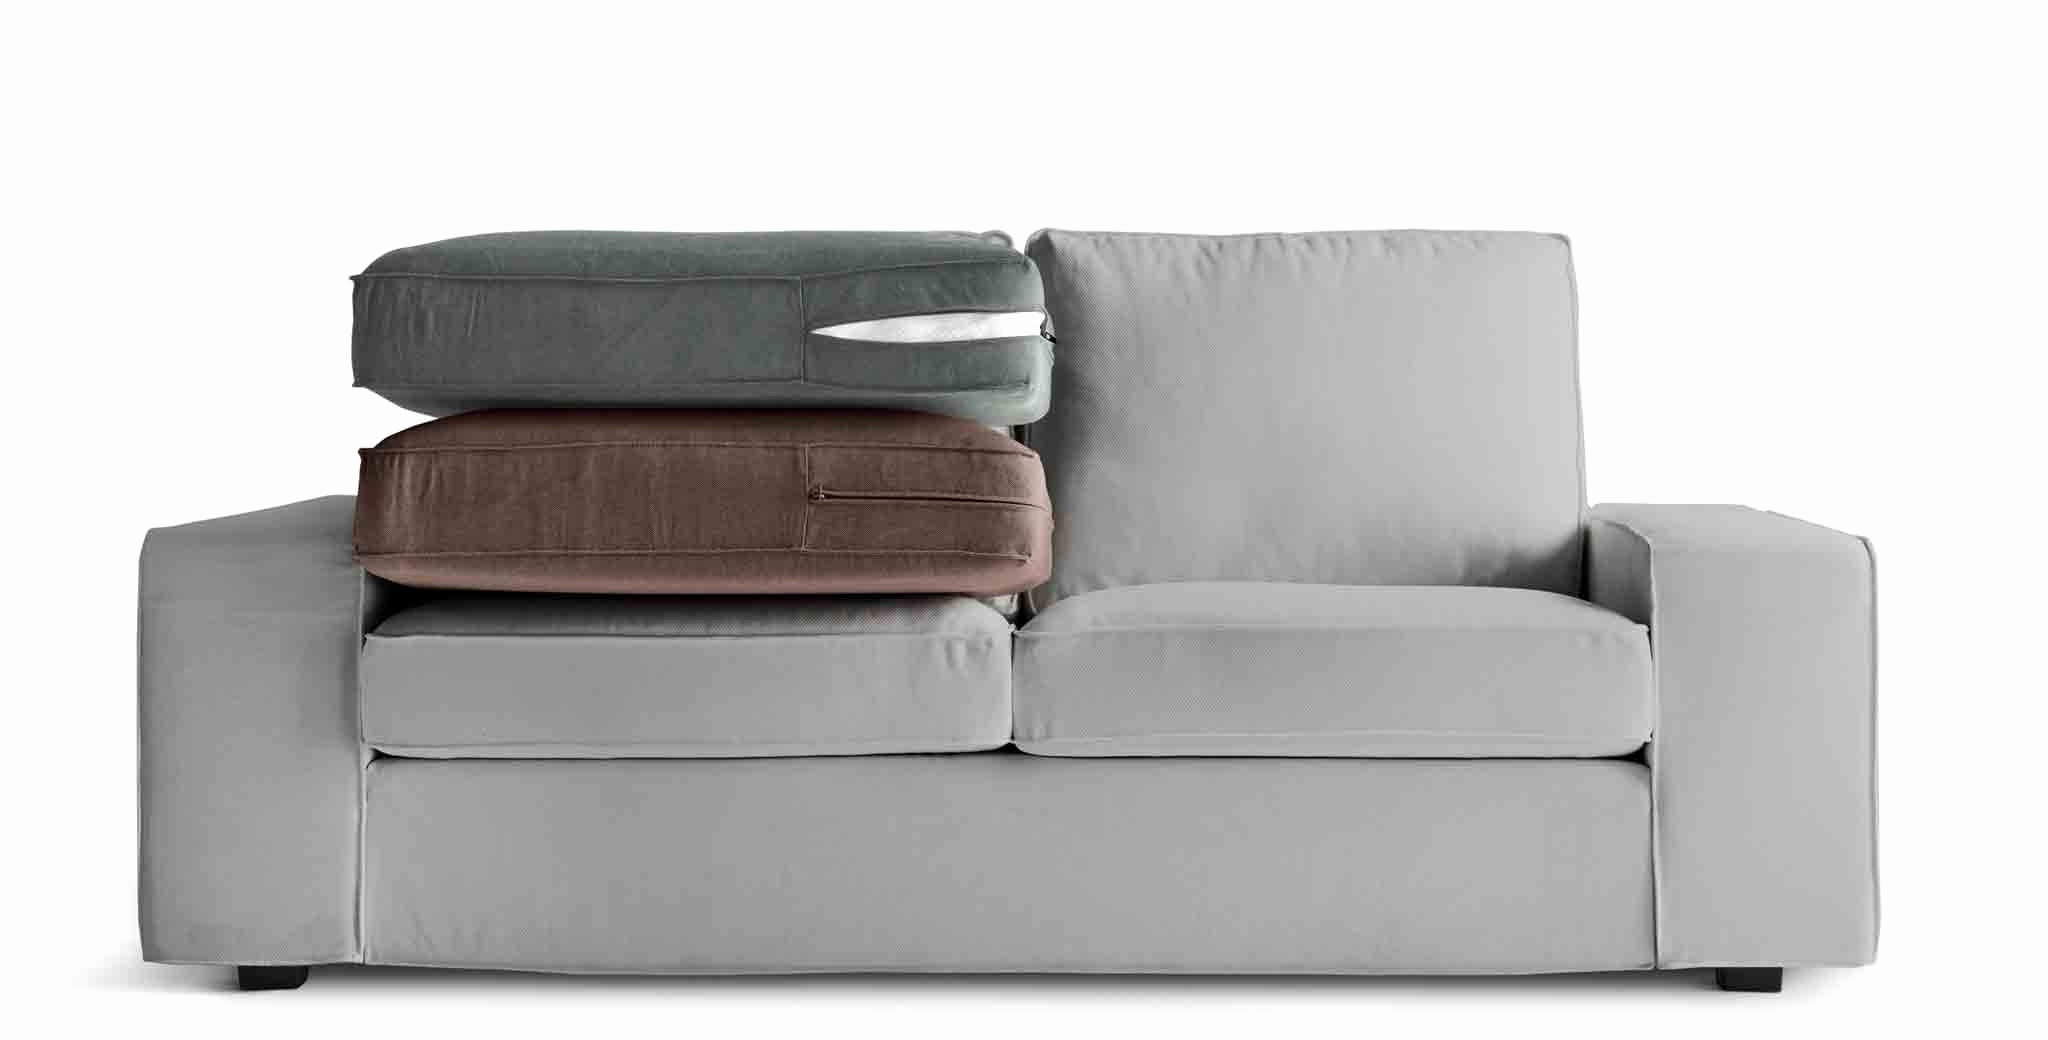 2018 Best Sofa Covers Ikea 2018 – Couches And Sofas Ideas With Sofas With Removable Covers (View 4 of 15)